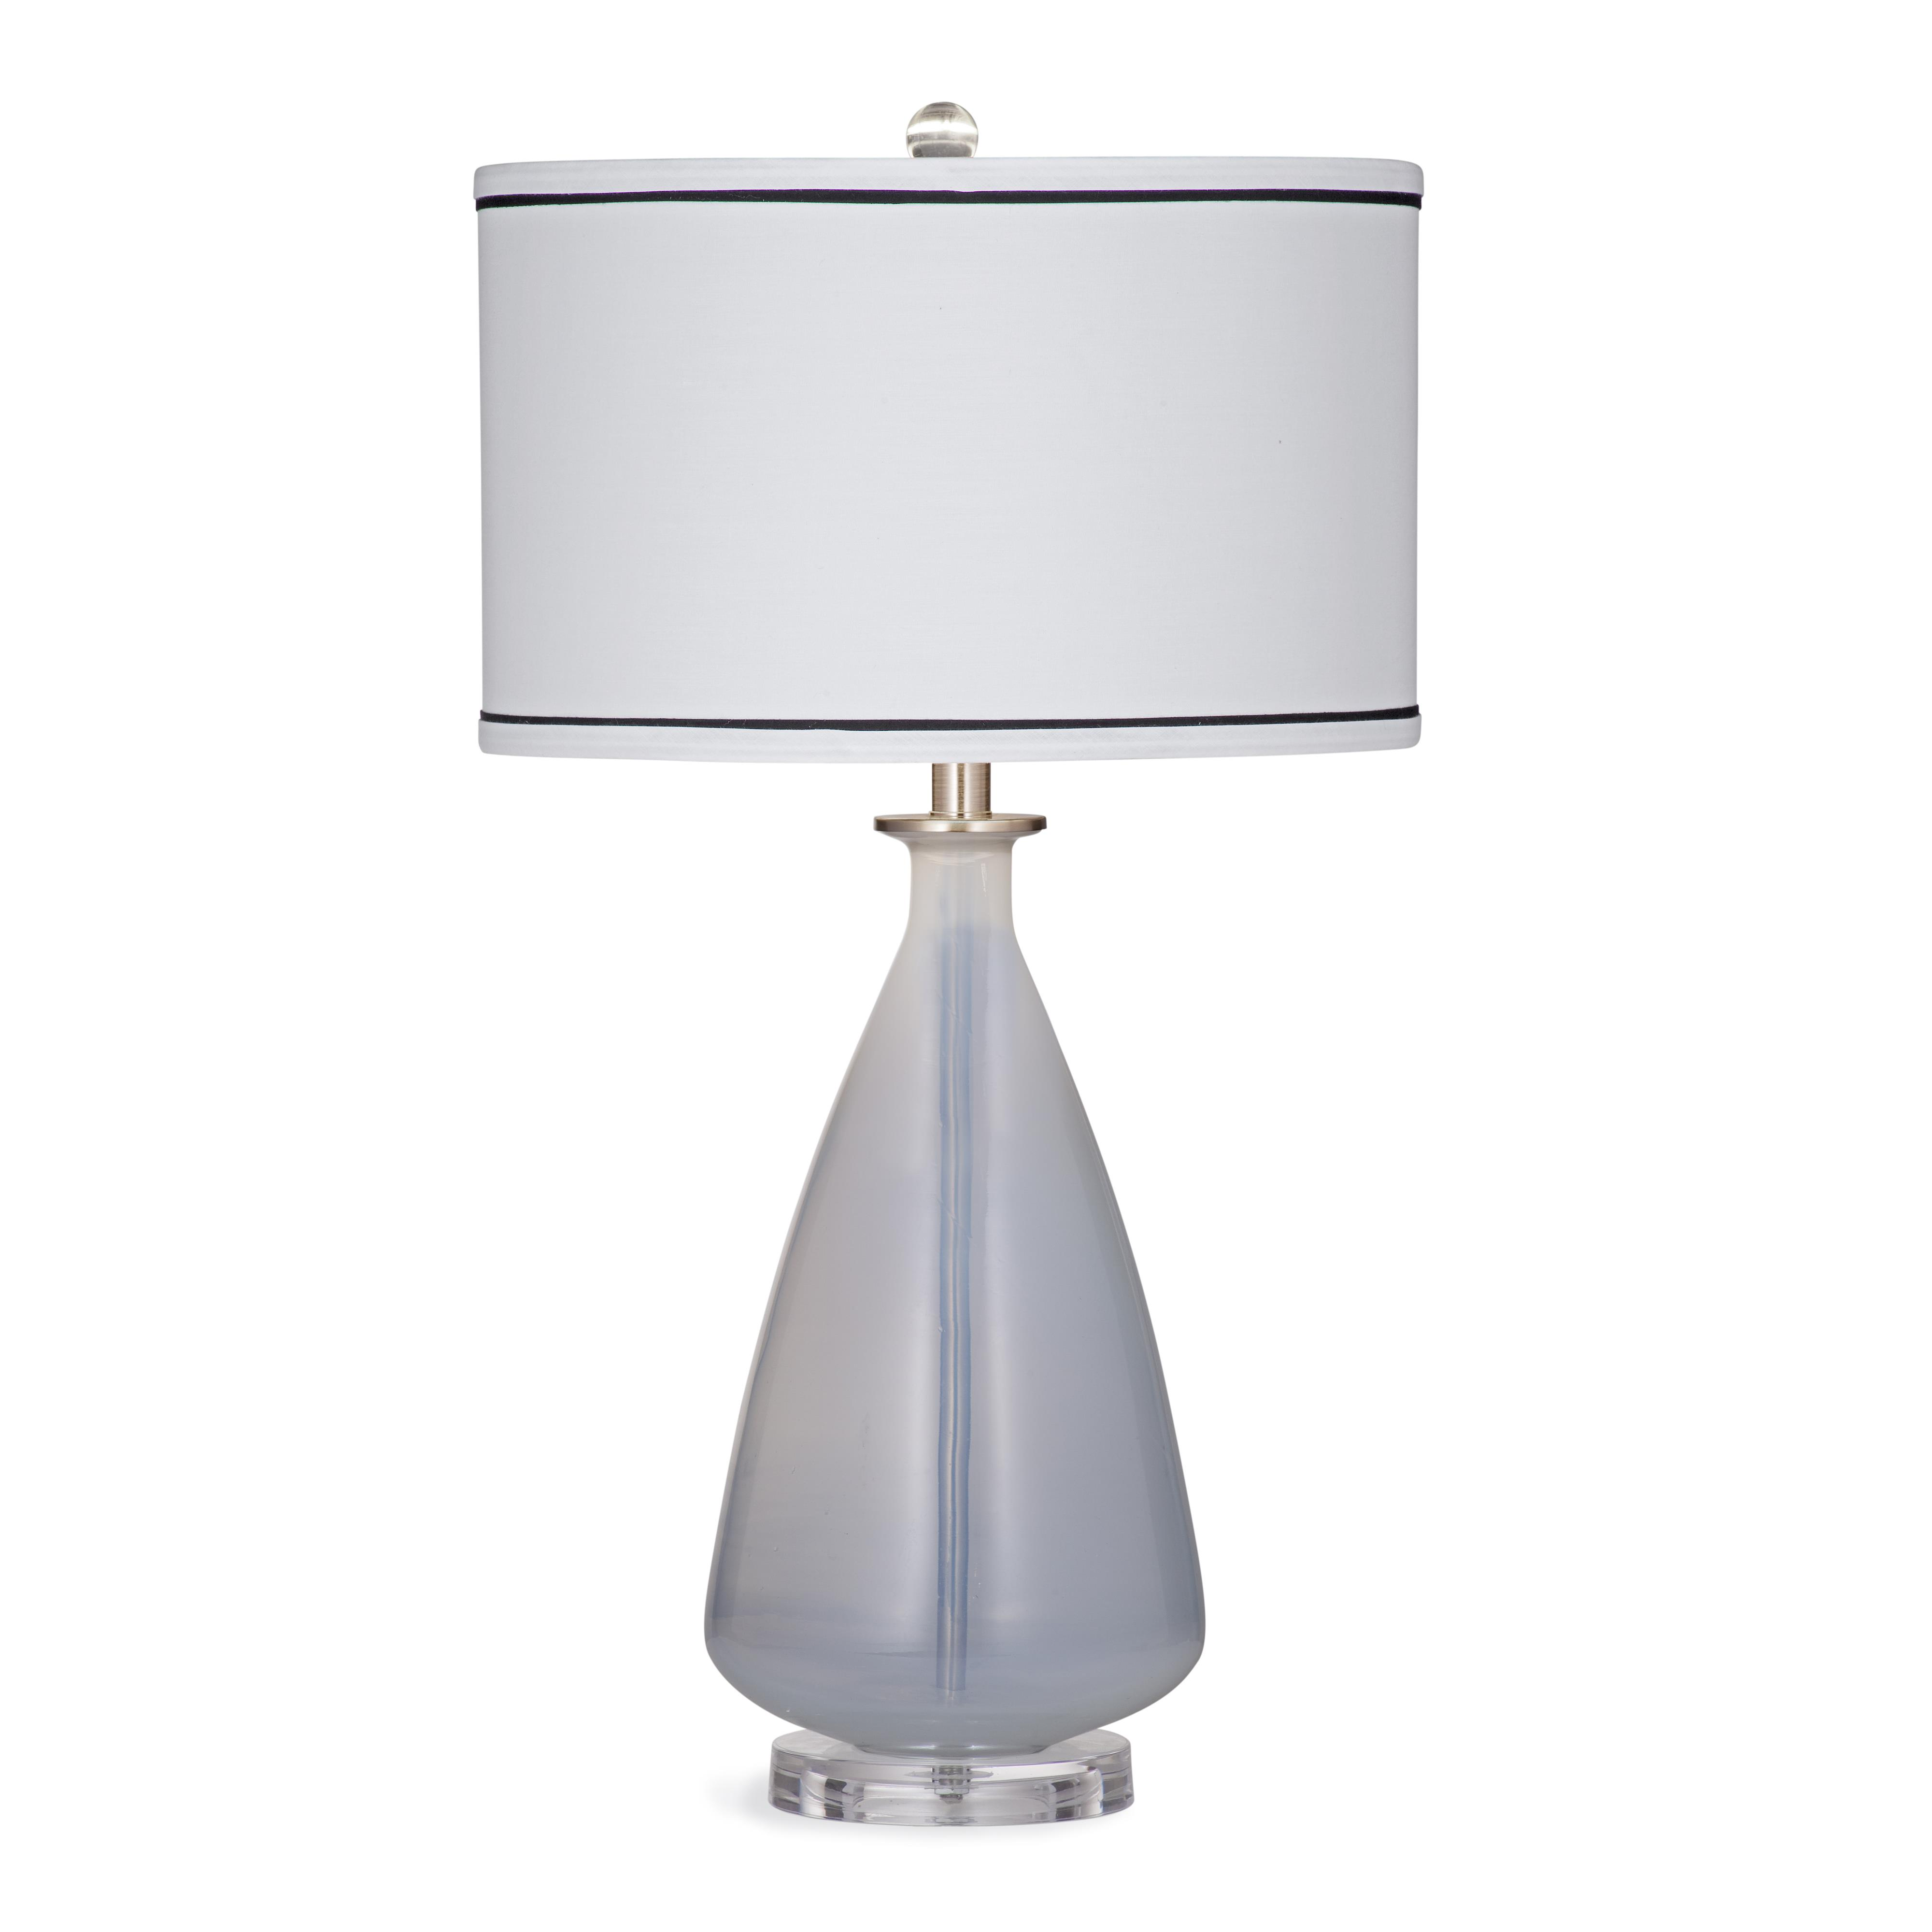 Old World Windsor Table Lamp by Bassett Mirror at Alison Craig Home Furnishings